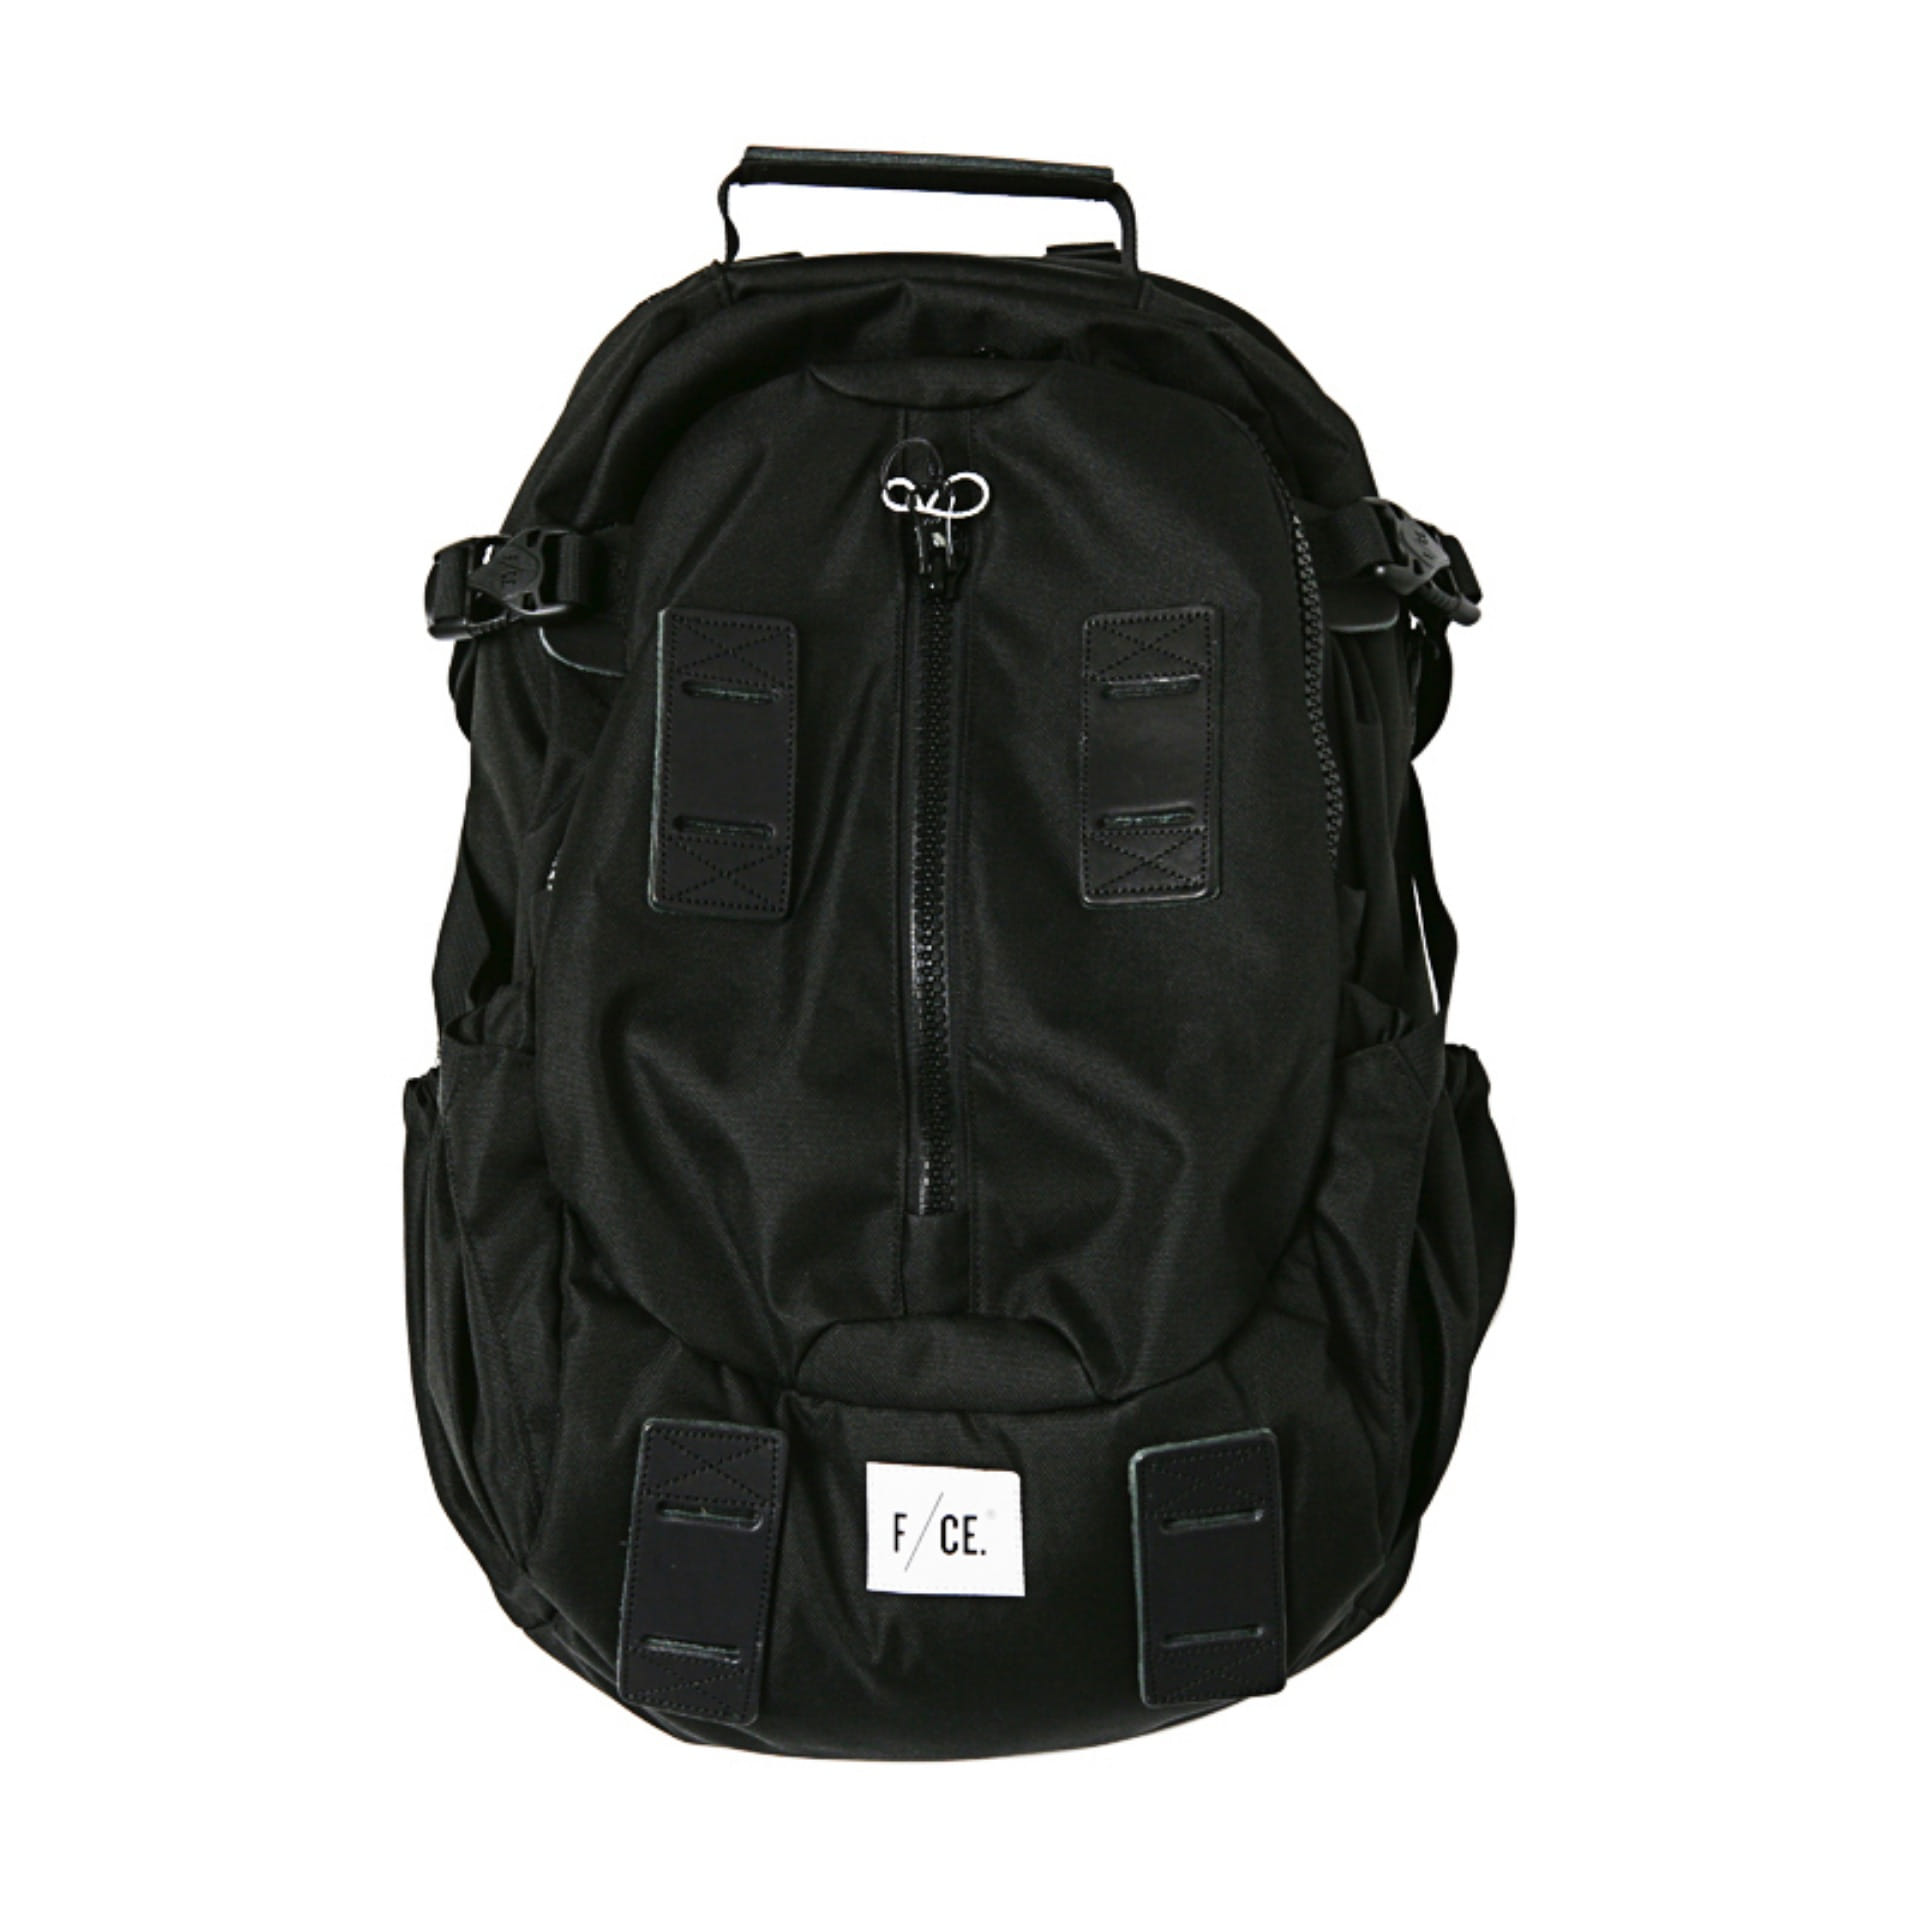 950 TRAVEL BACKPACK (BLACK)